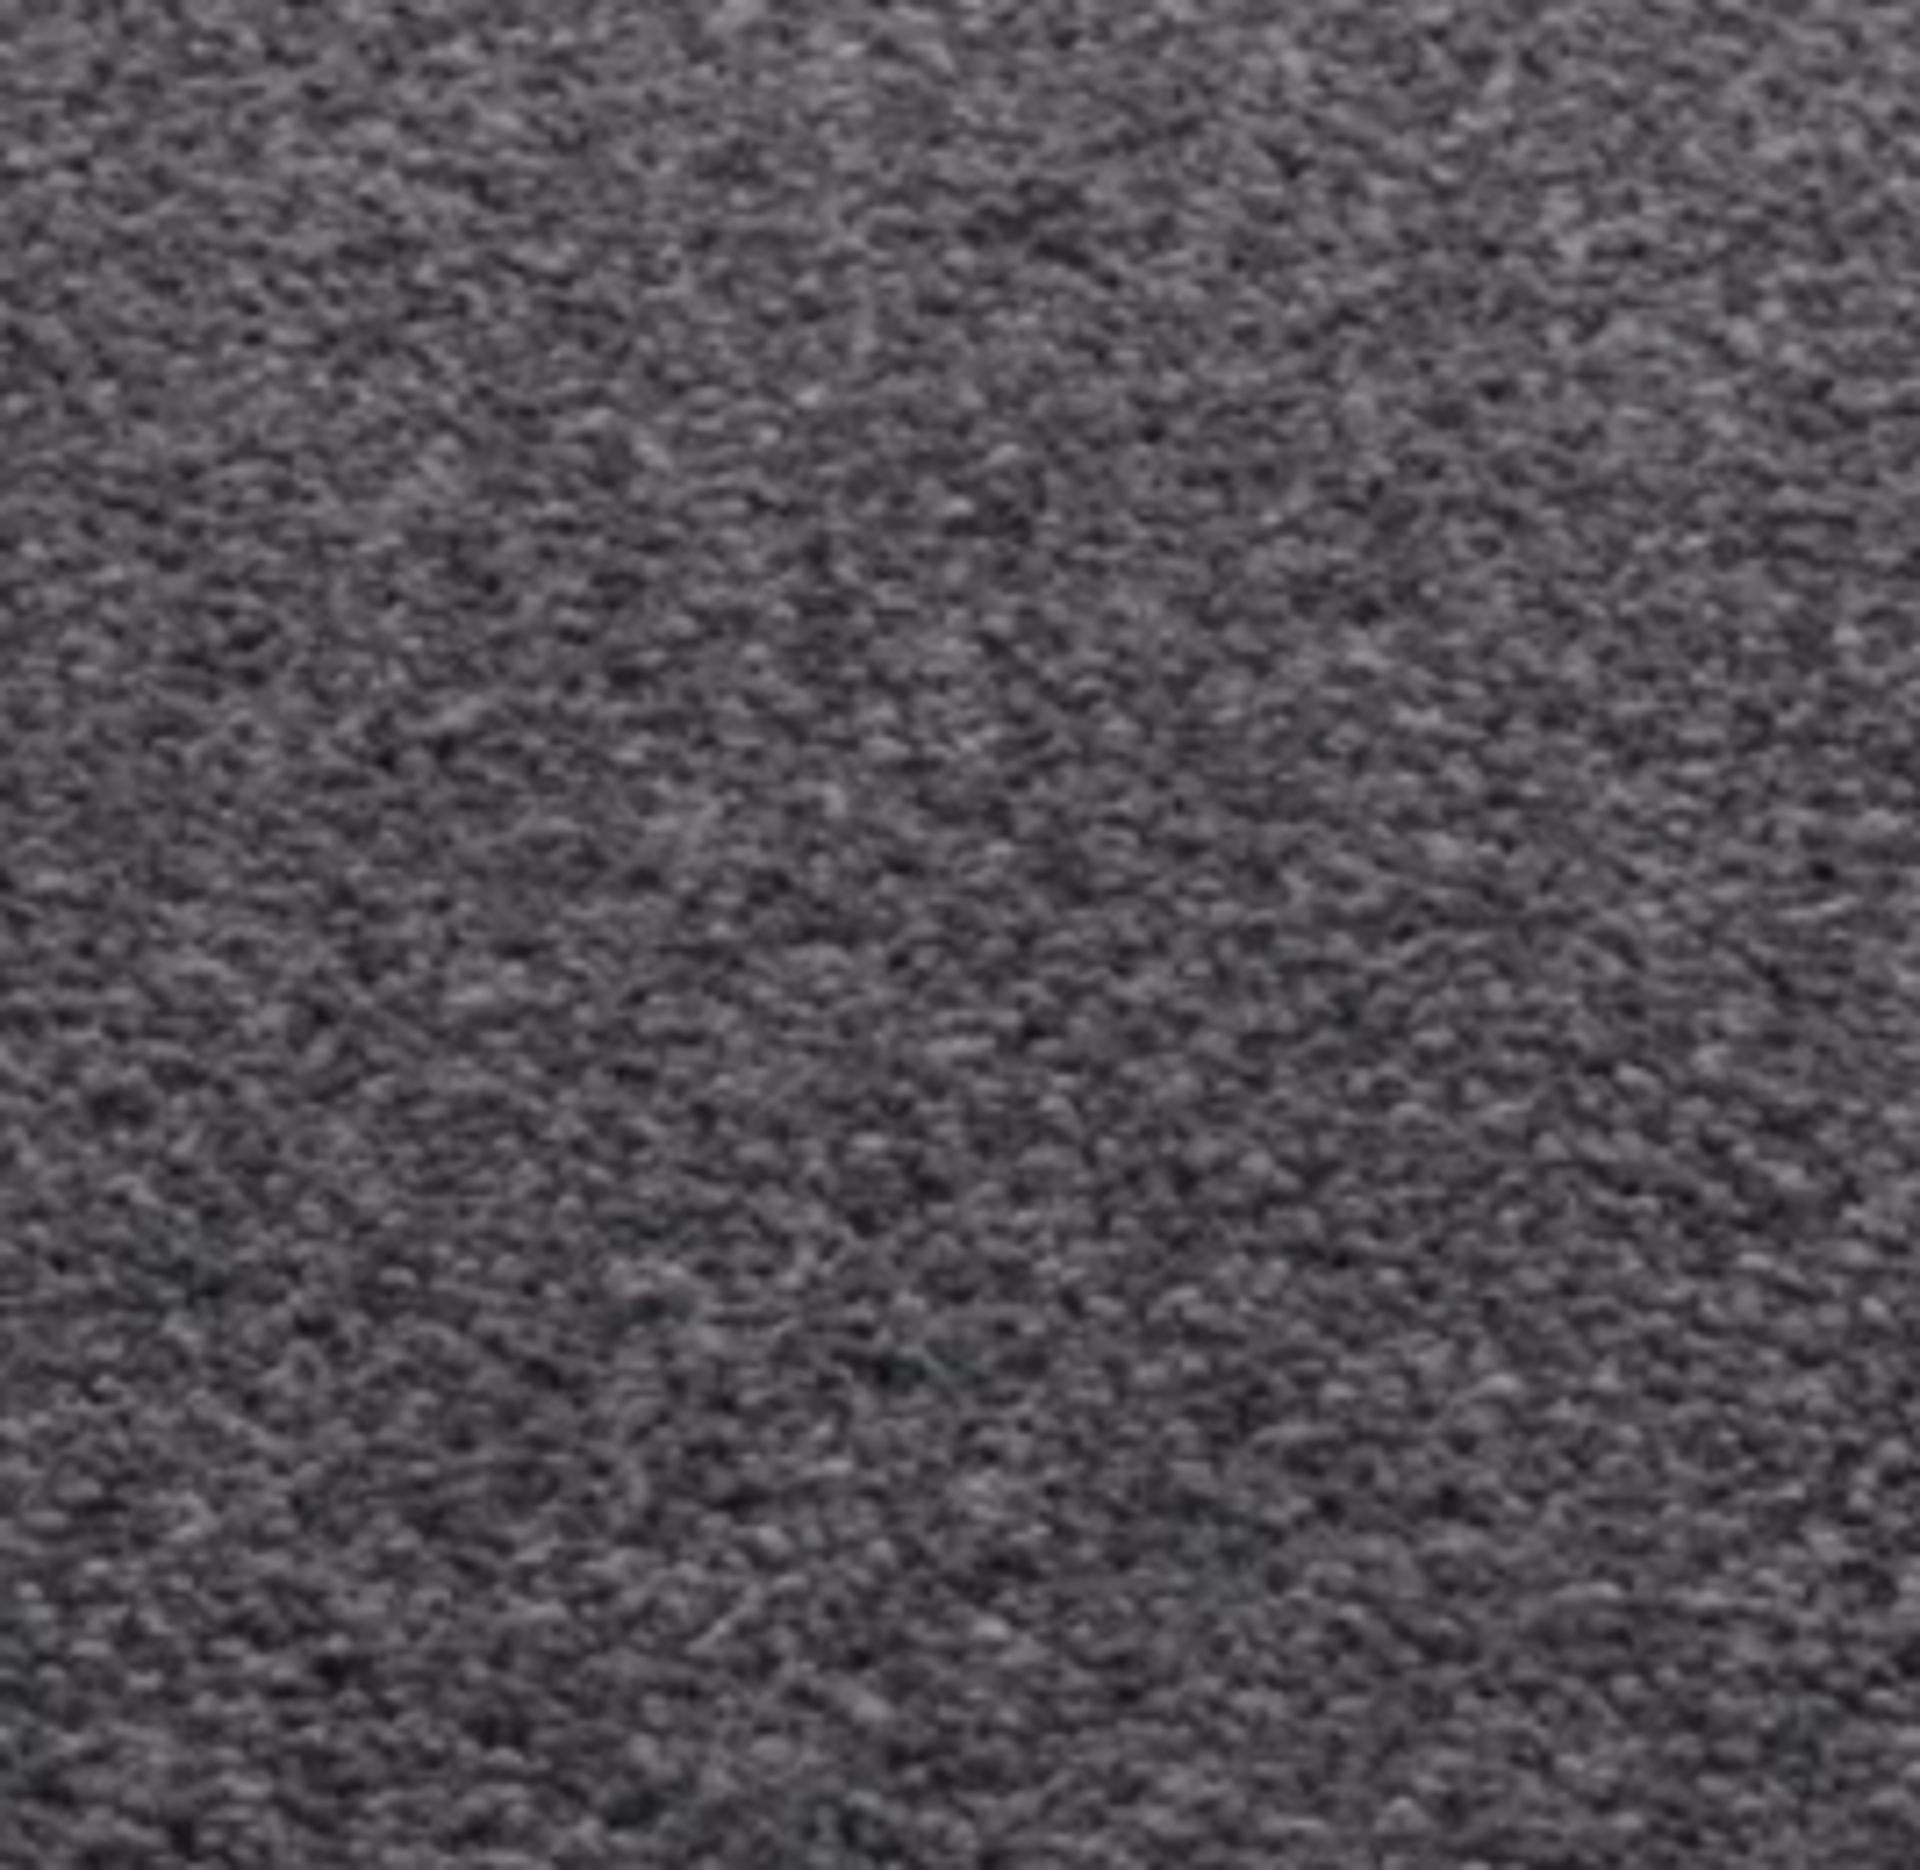 RRP £710 Bagged And Rolled Champagne Granite 4M X 4.44M Carpet (159082)